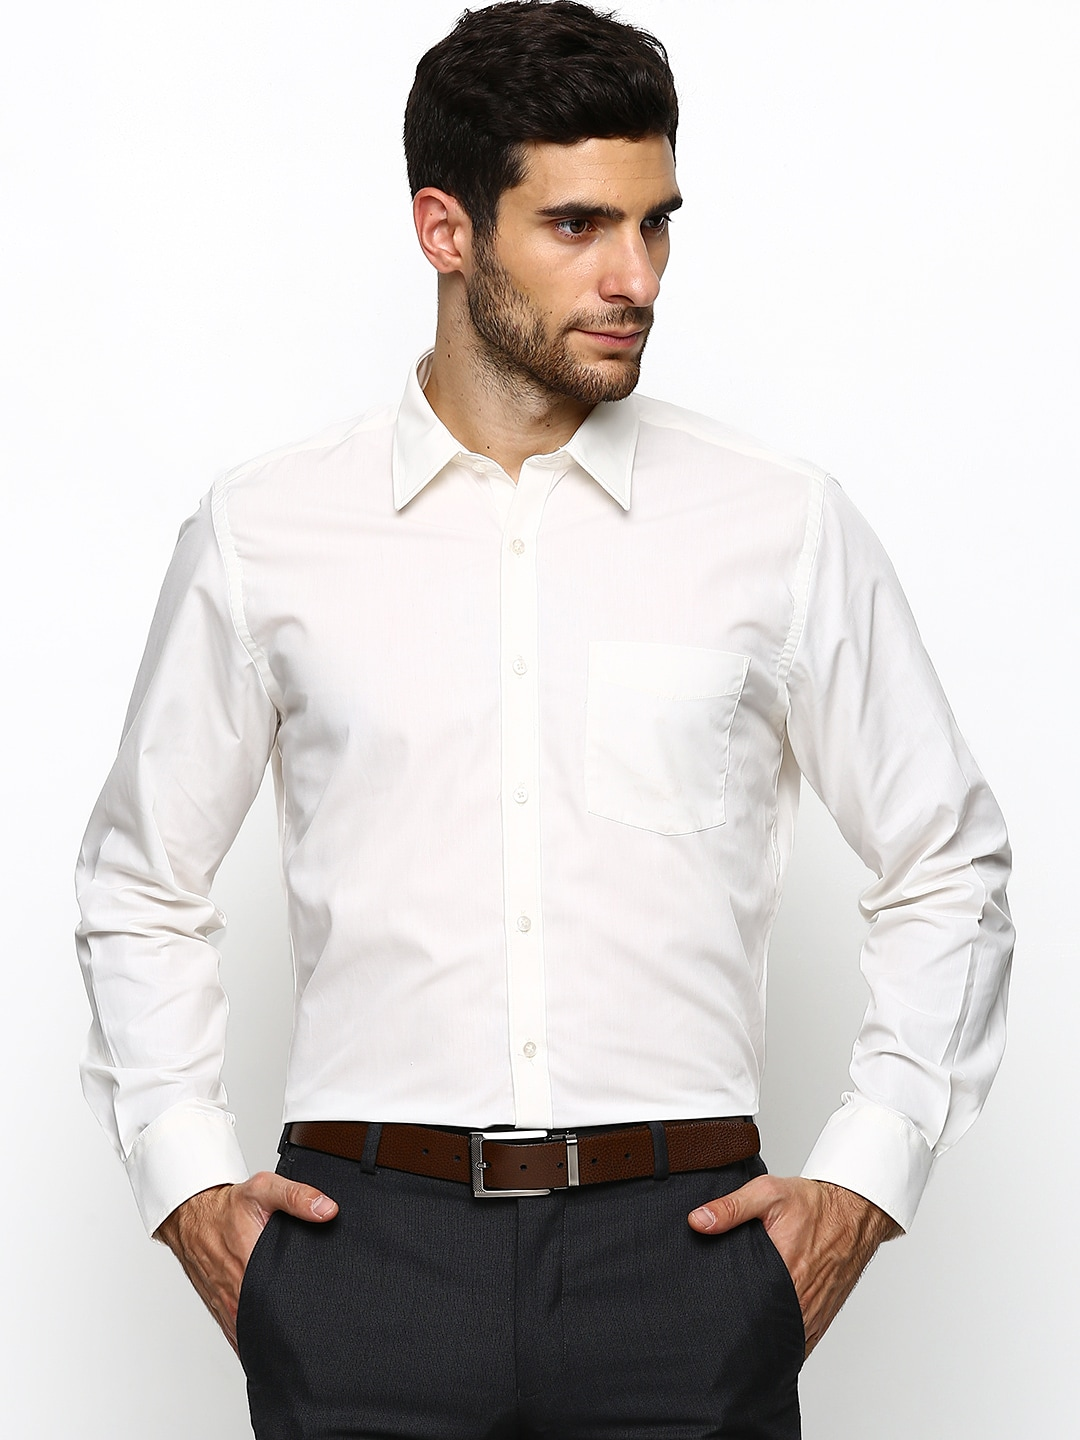 Whether work or a special occasion, elevate your look with men's white shirts, an essential for every wardrobe. Our collection of men's shirts in a variety of impeccable styles from slim fit or classic regular will keep you cool and comfortable throughout the day.